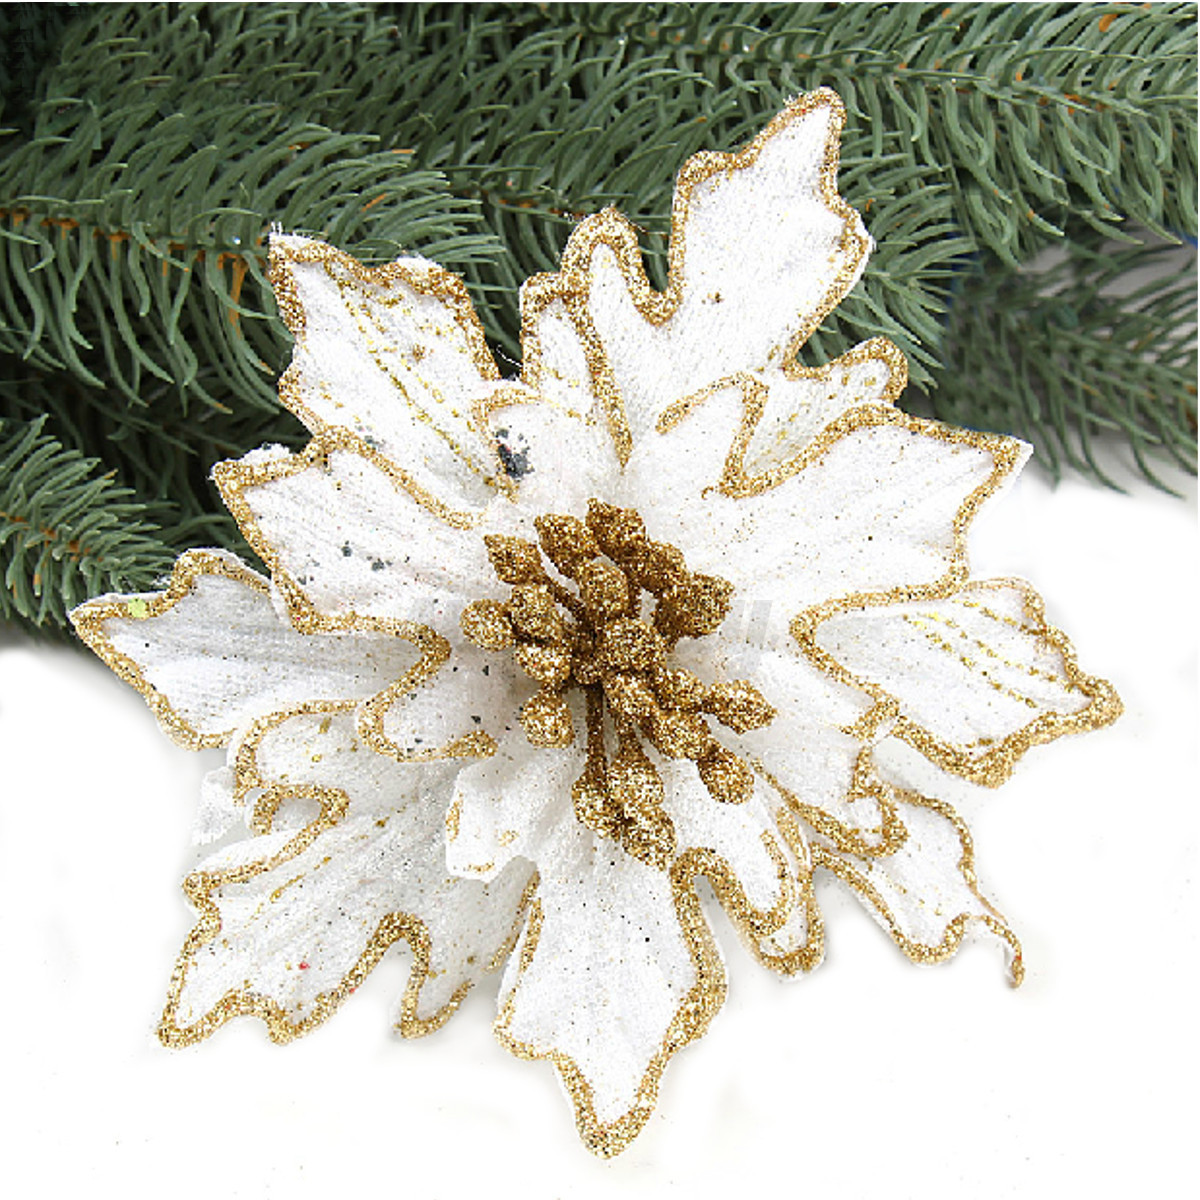 Artificial flower xmas party wedding home ornaments for Engagement christmas tree ornaments